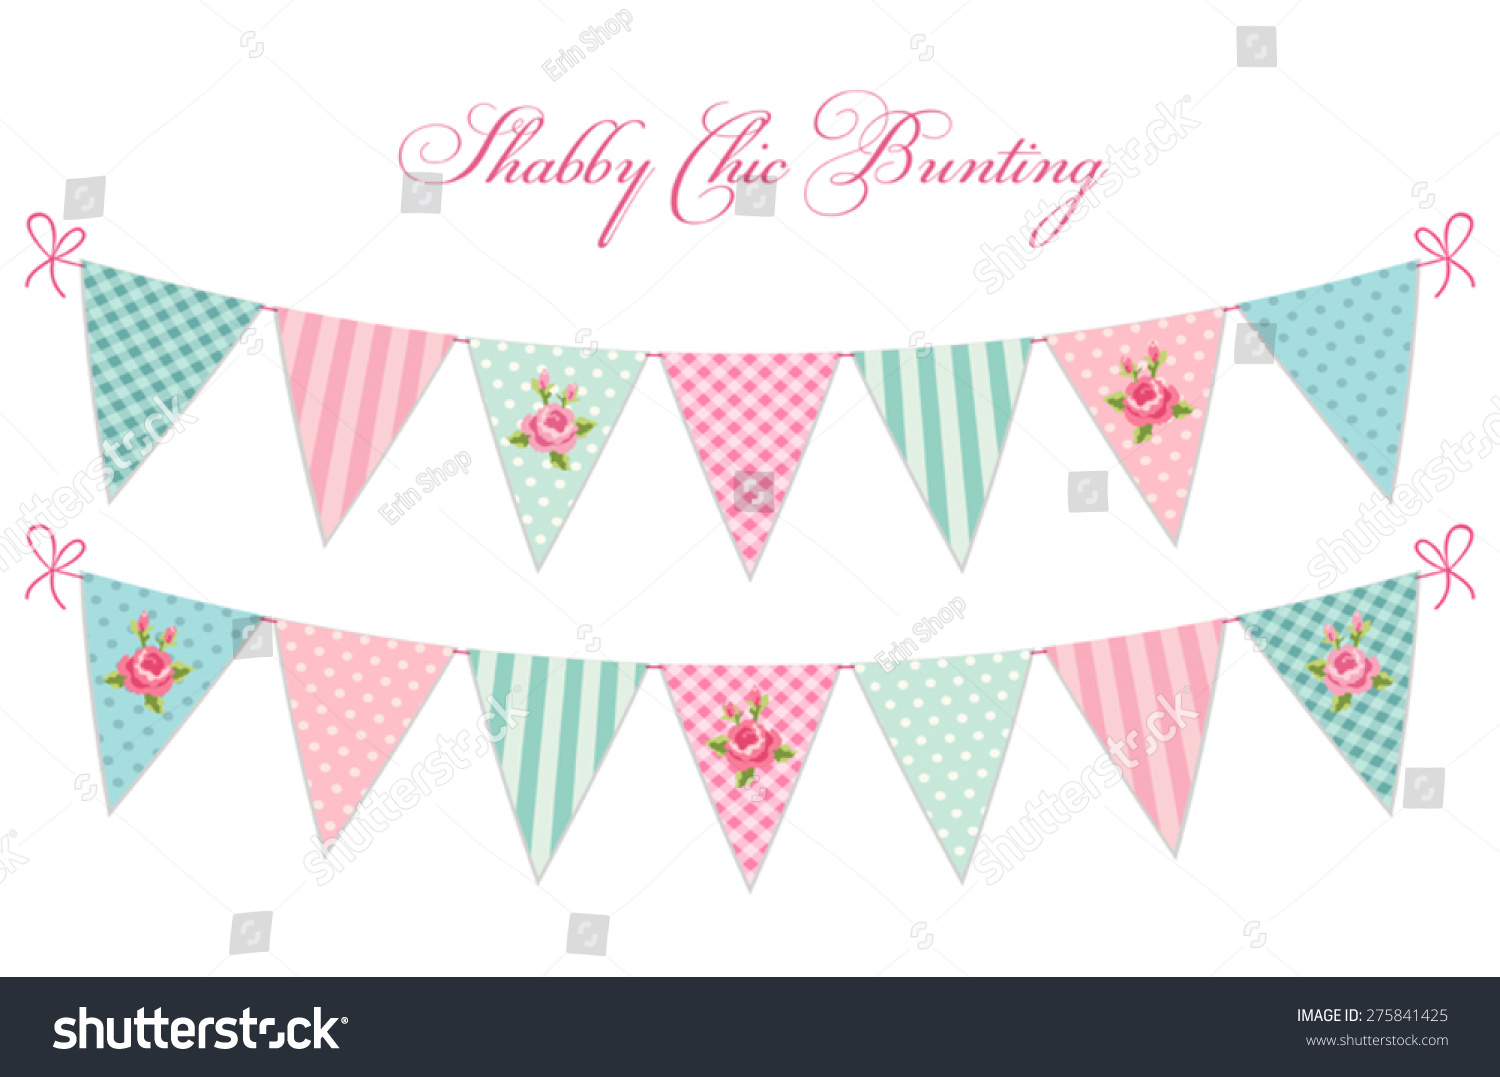 Vector bunting flags lovely celebration card with colorful paper - Cute Vintage Shabby Chic Textile Bunting Flags Ideal For Baby Shower Wedding Birthday